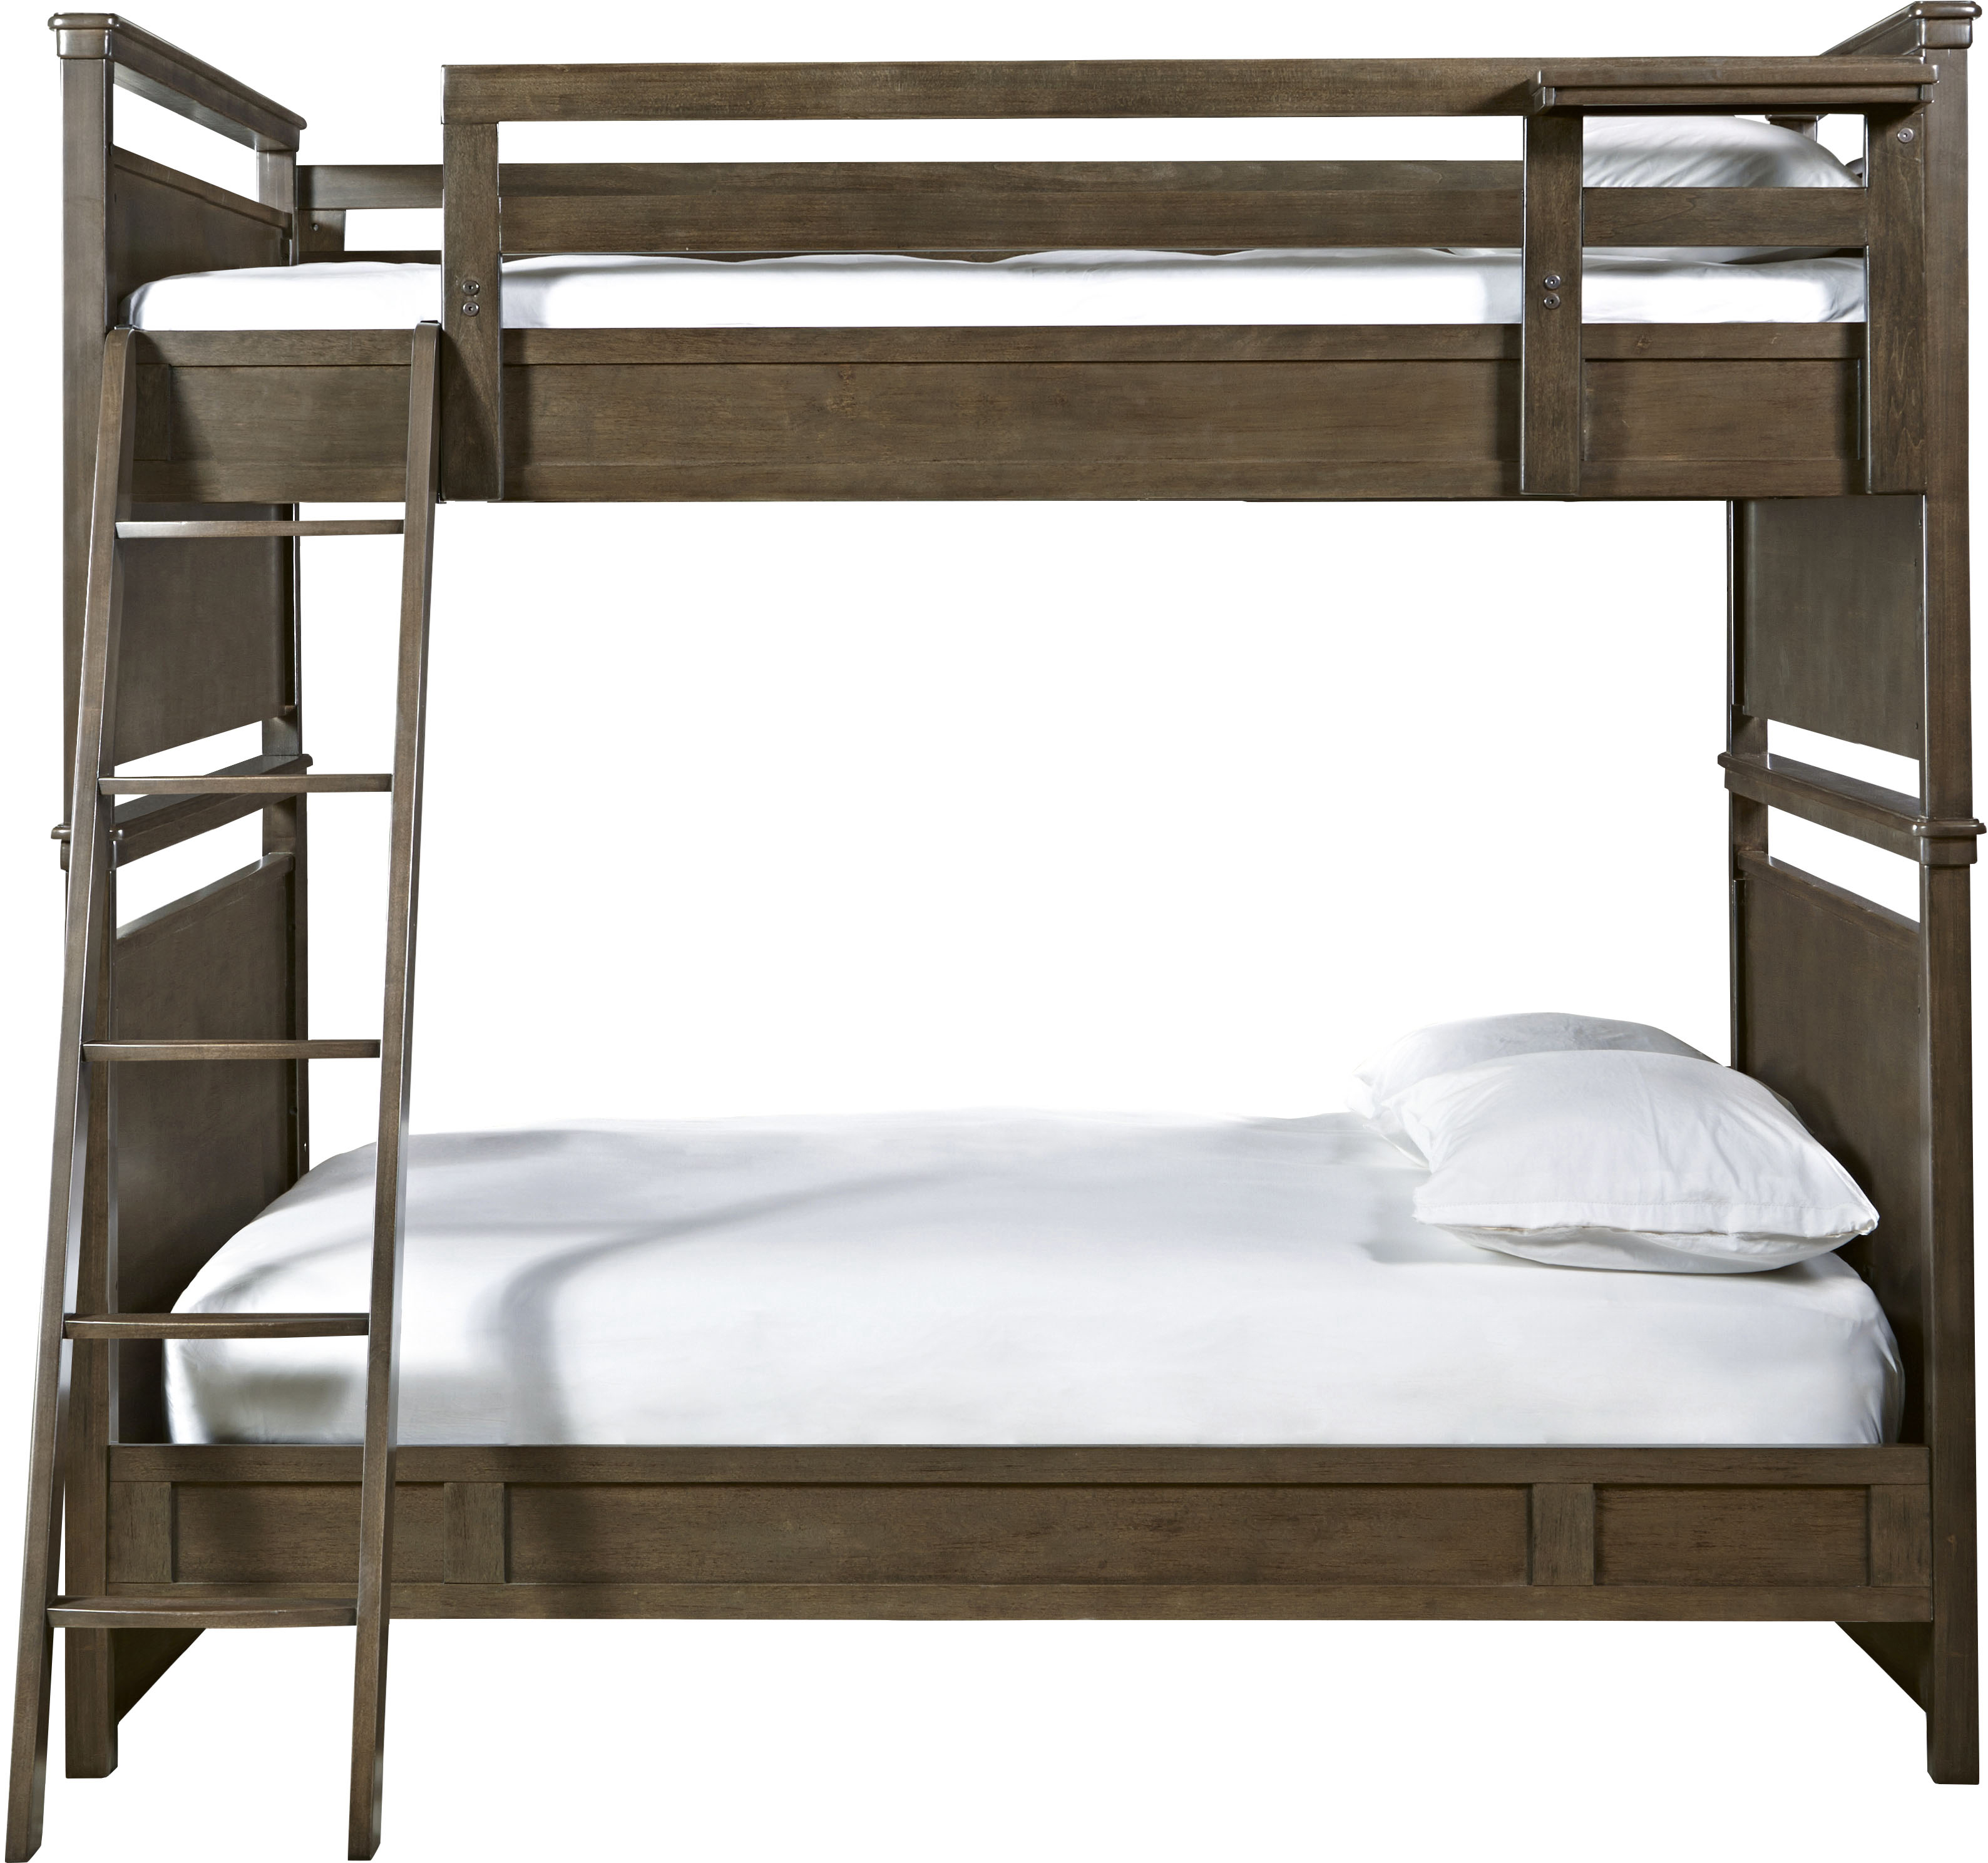 Smartstuff Varsity Full All American Bunk Bed With Ladder